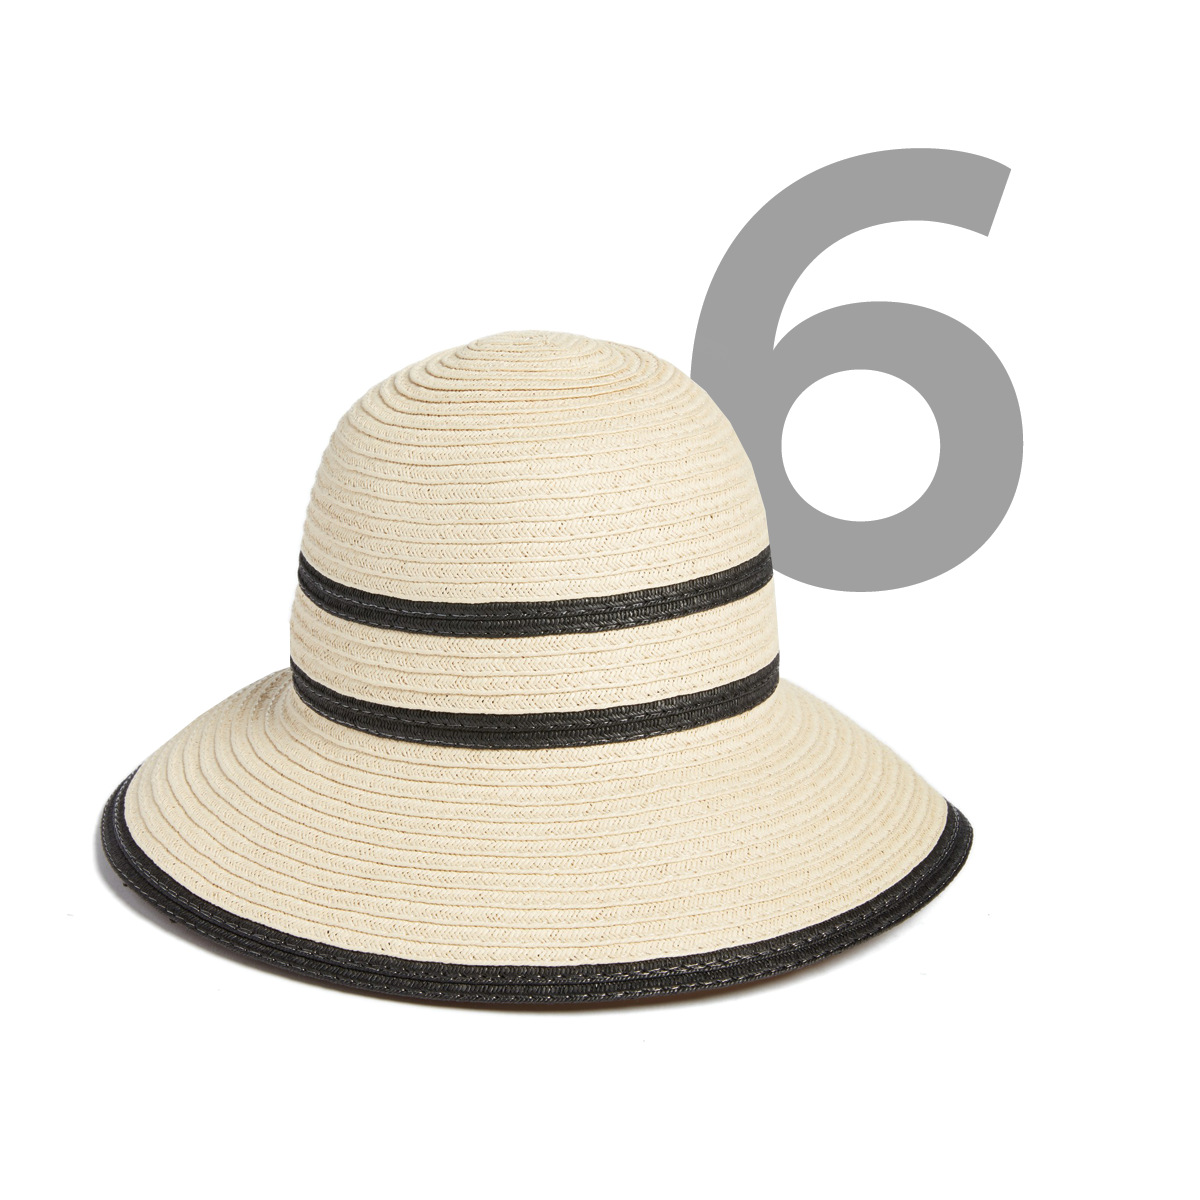 ECHO Bondi Straw Cloche Hat, available at Nordstrom